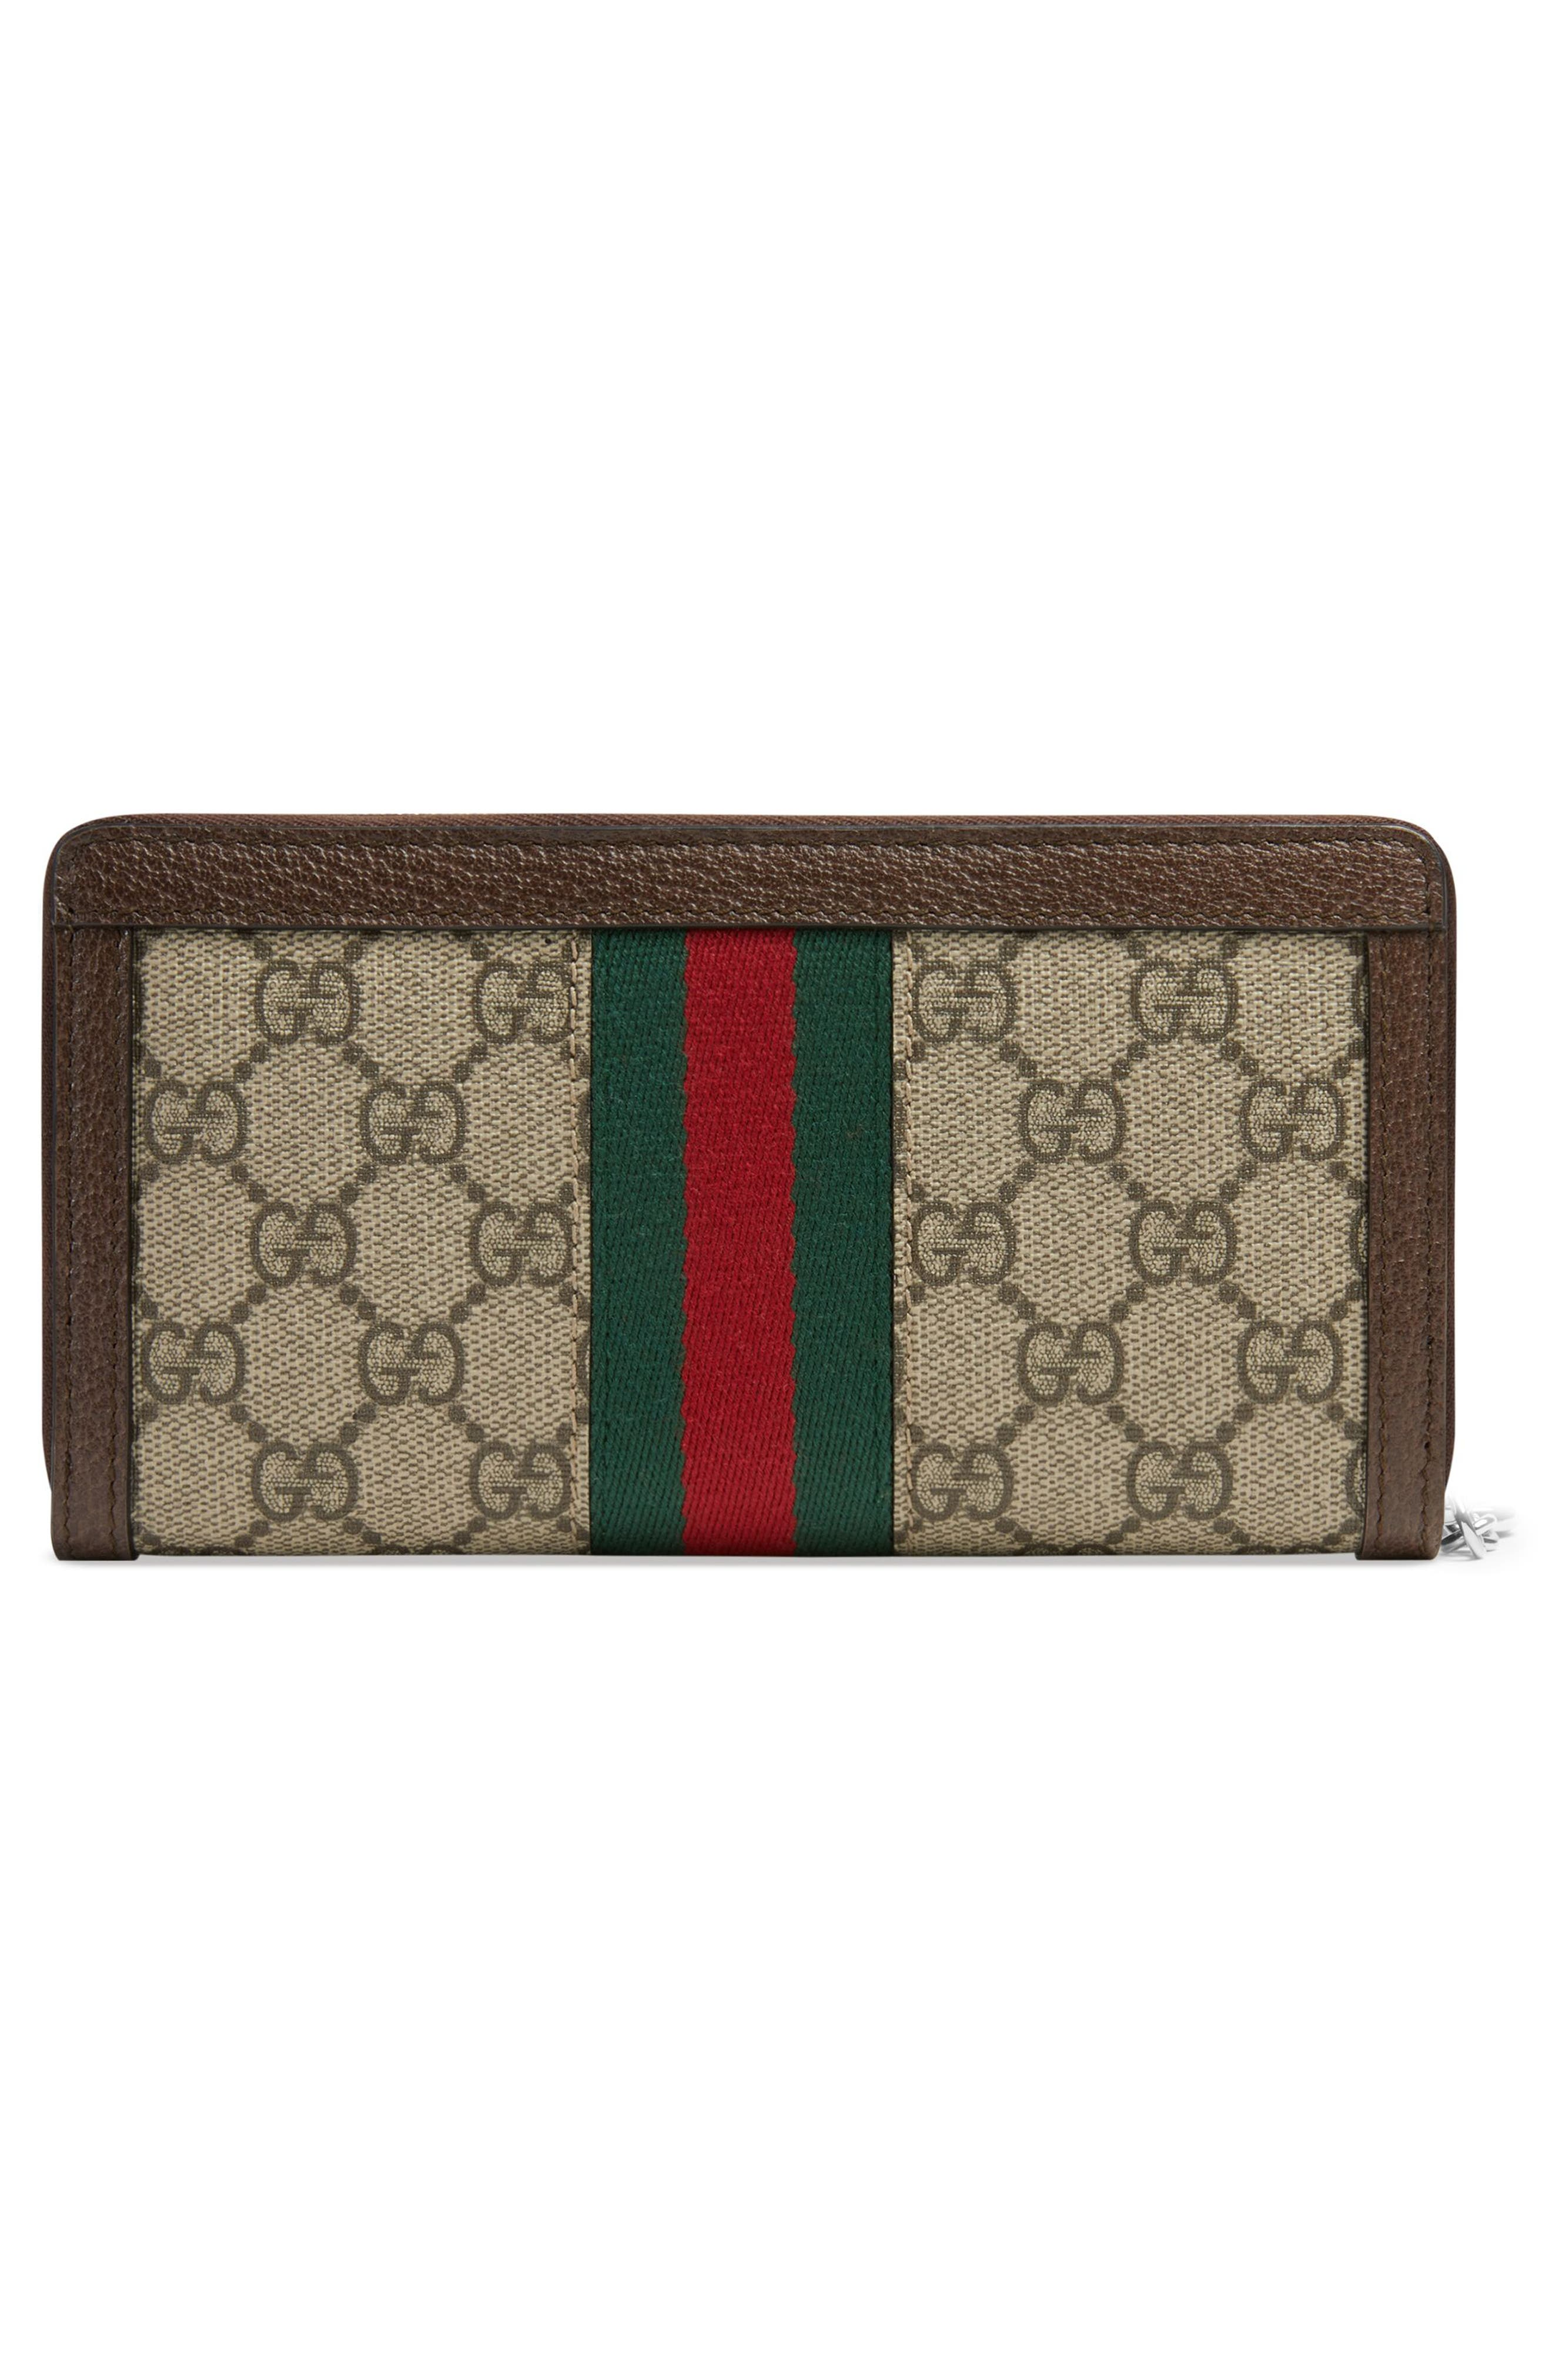 GUCCI, Ophidia GG Supreme Zip-Around Wallet, Alternate thumbnail 3, color, BEIGE EBONY/ ACERO/ VERT RED